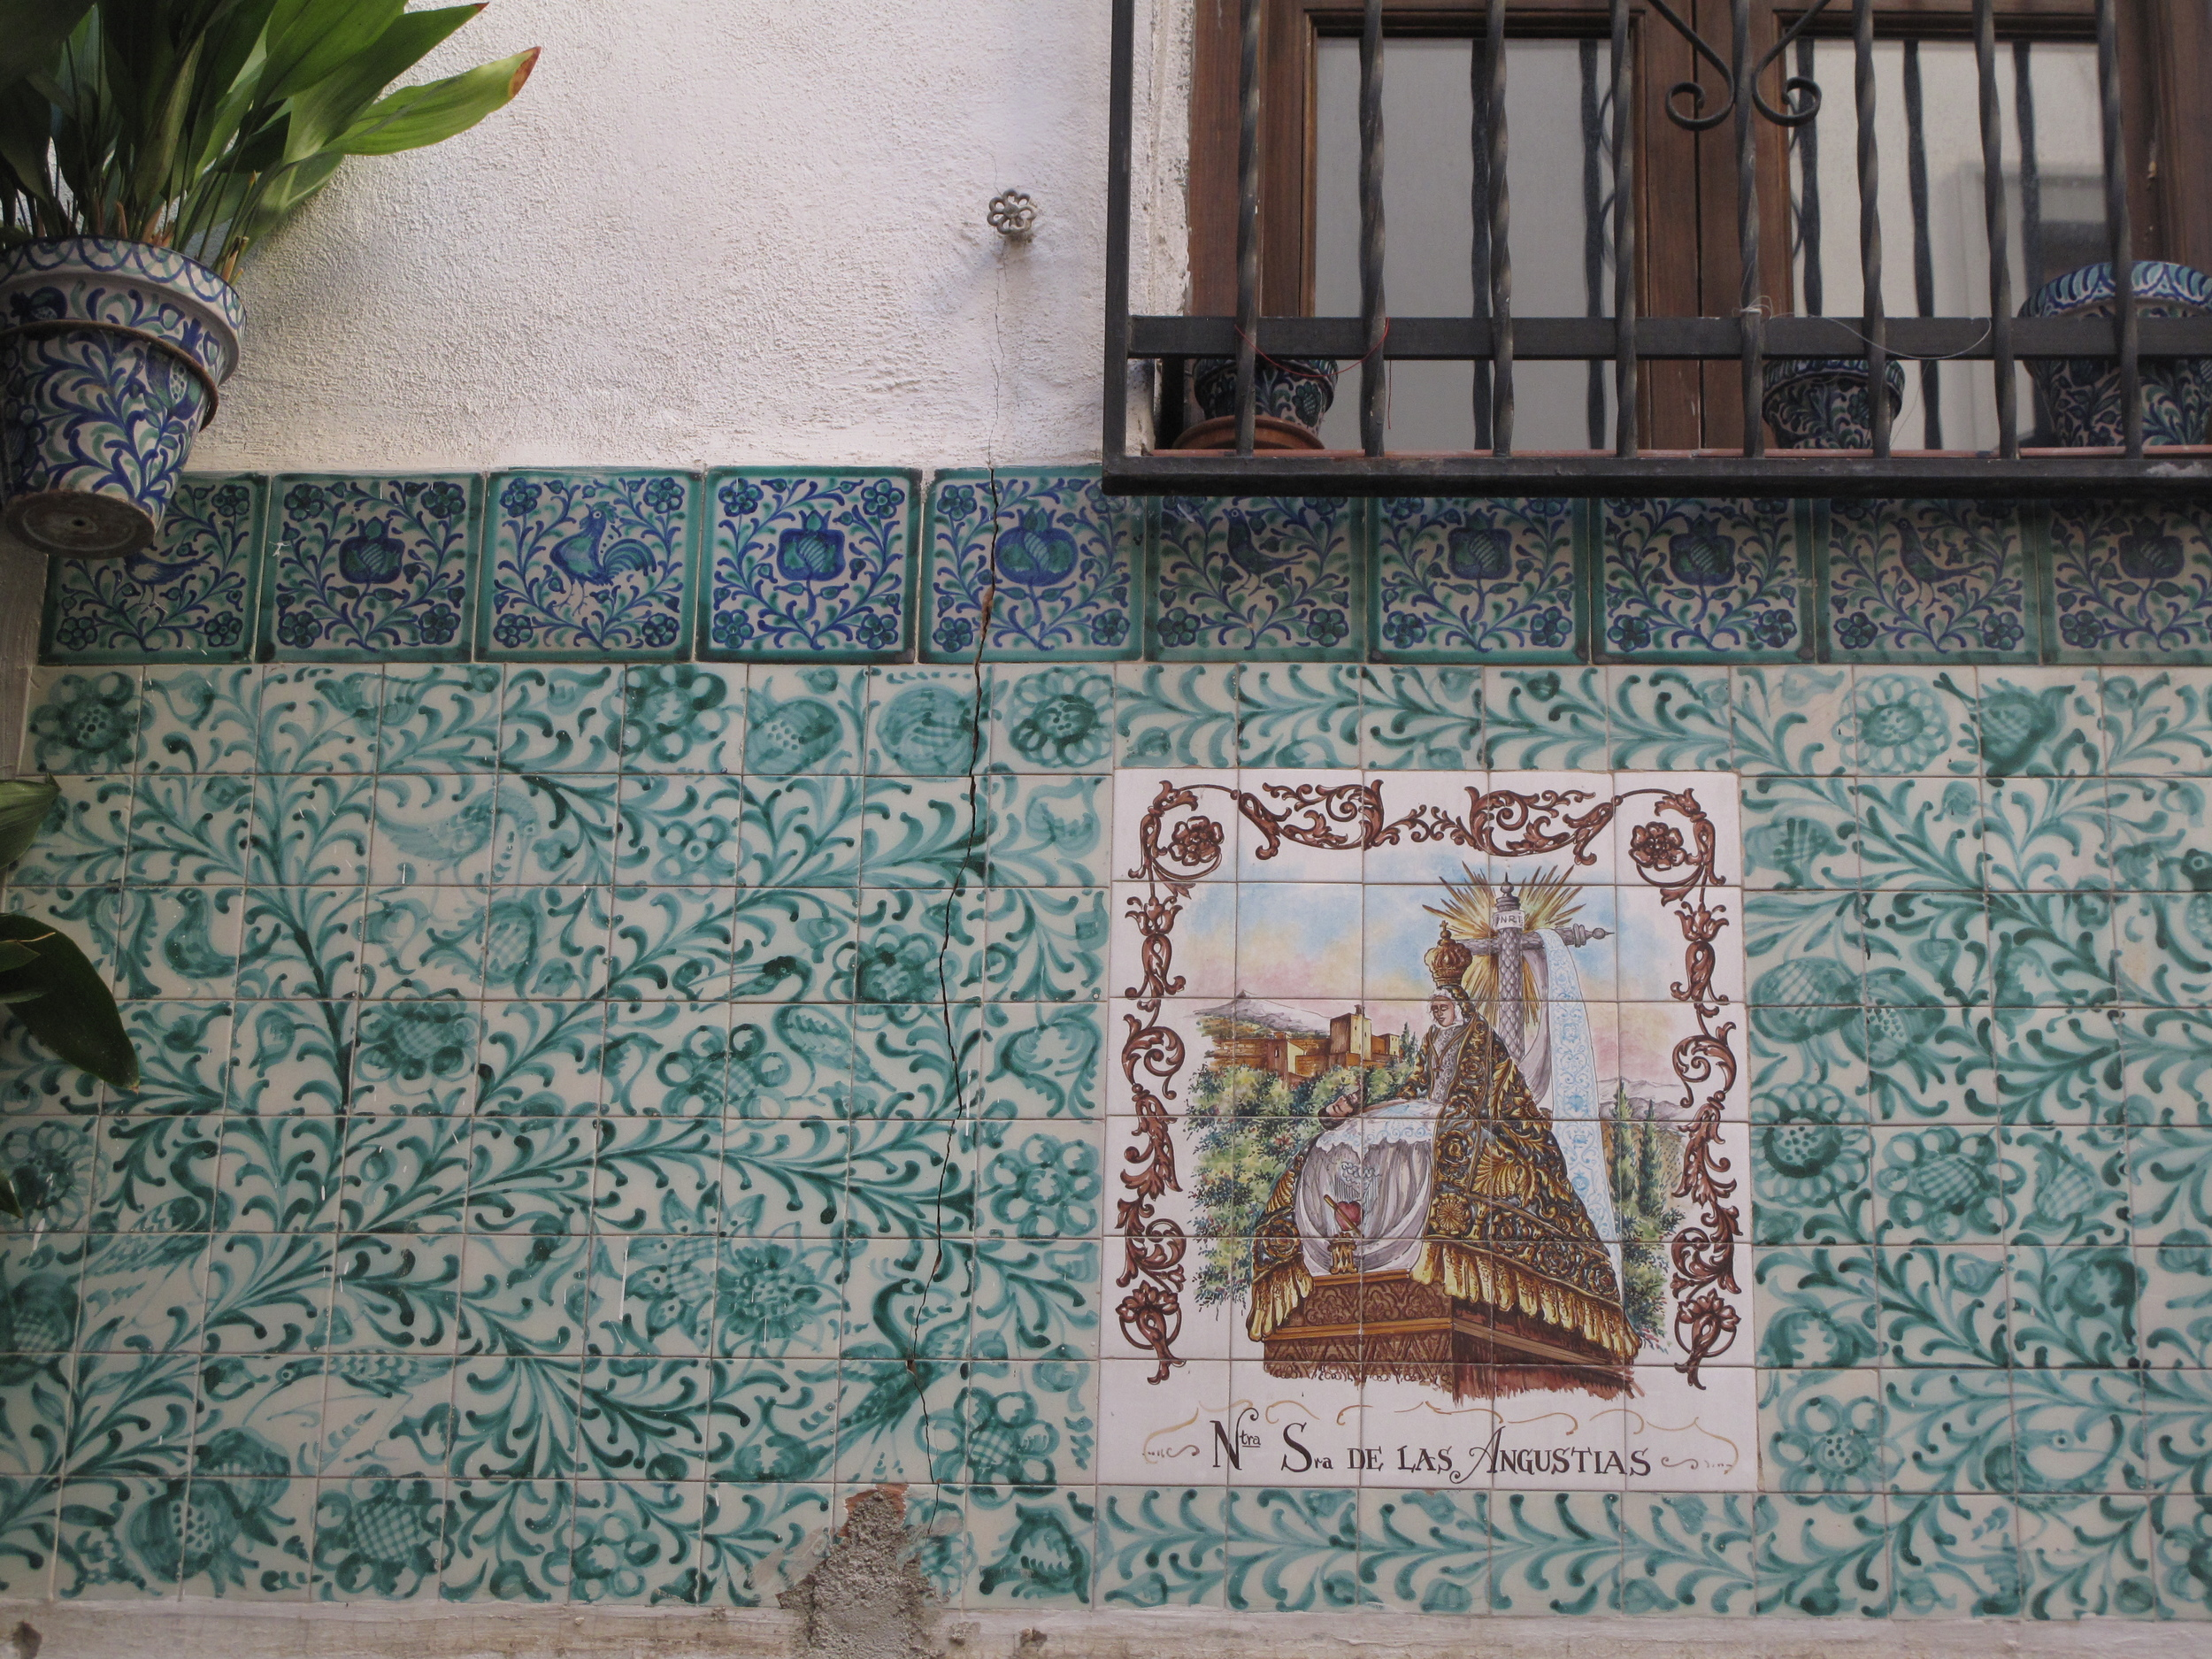 Tiled walls in the old market quarter of Granada